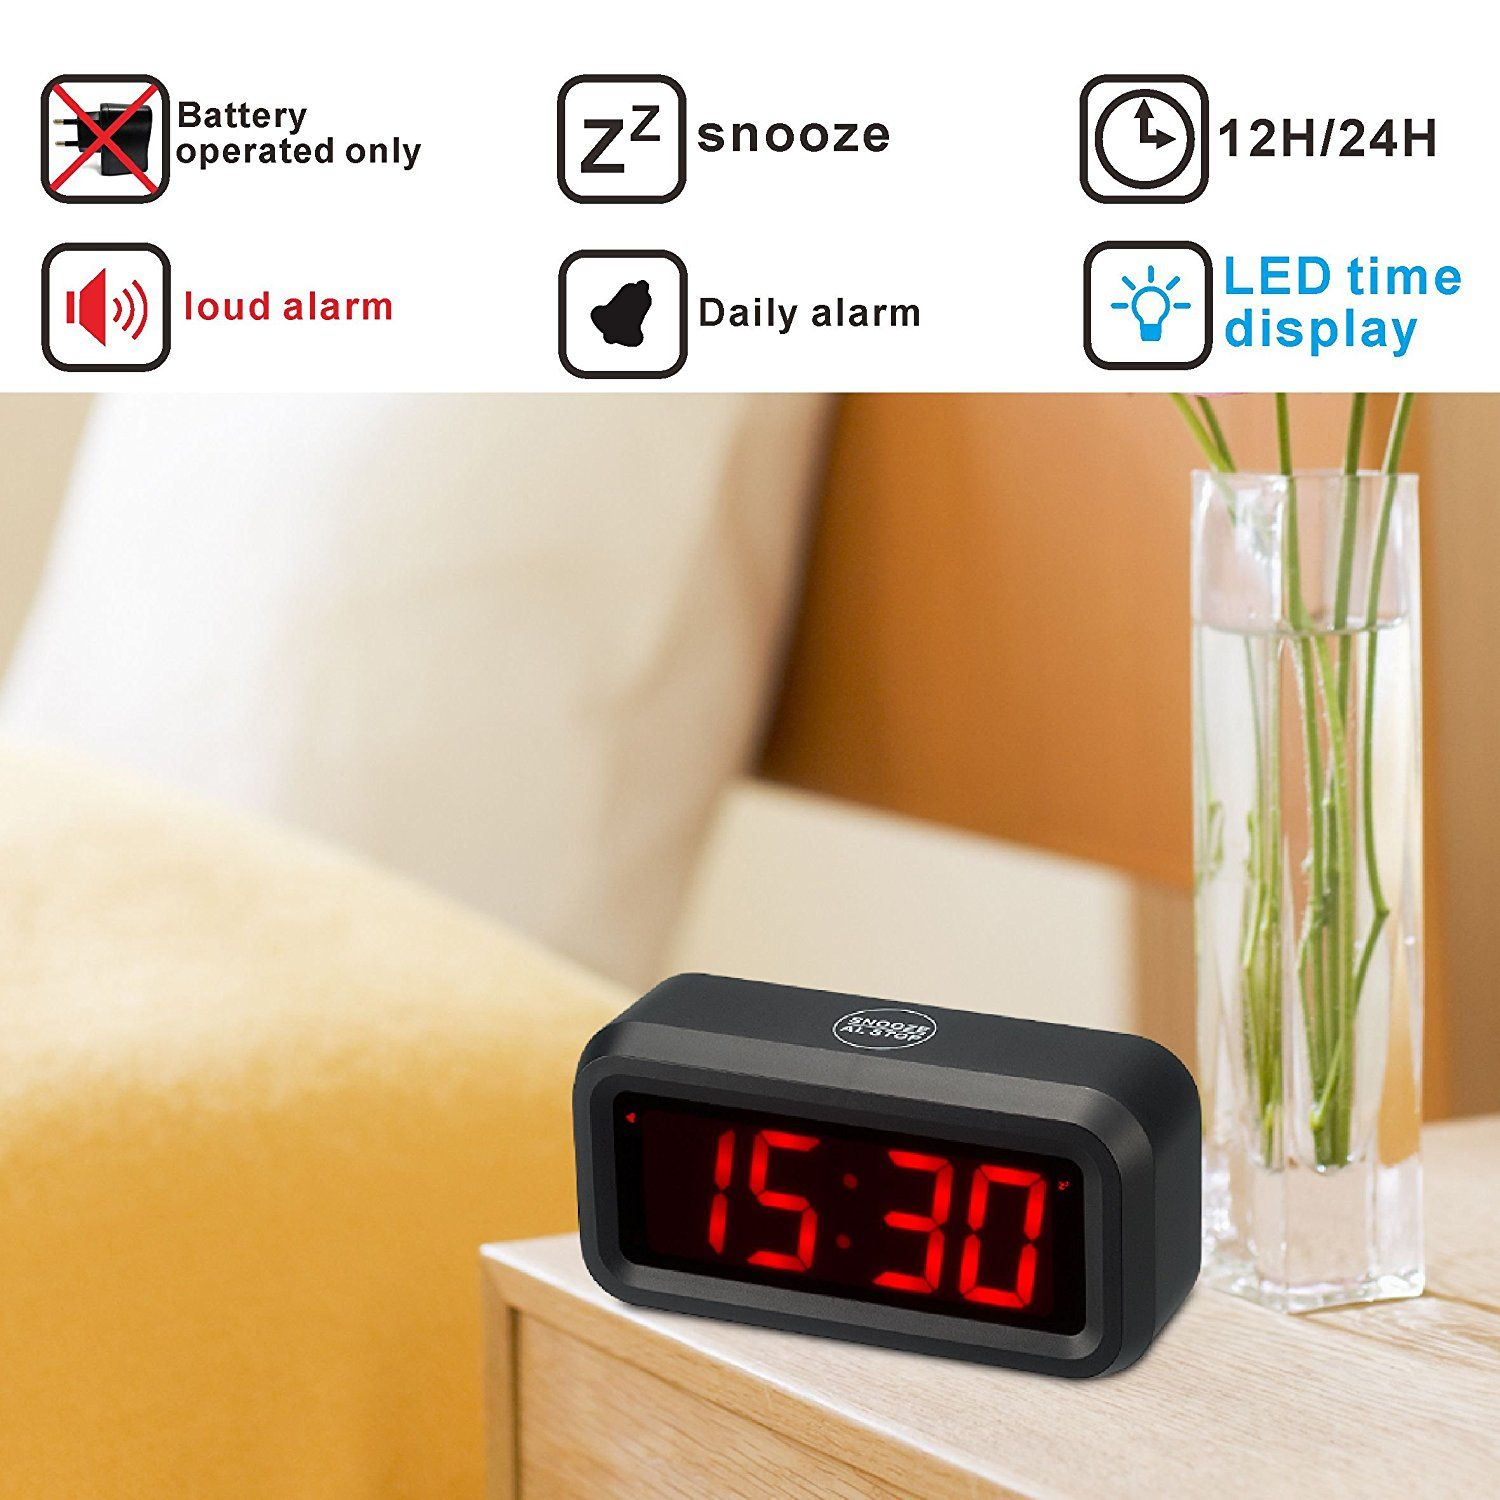 Kwanwa Led Digital Alarm Clock Battery Operated Only Small For